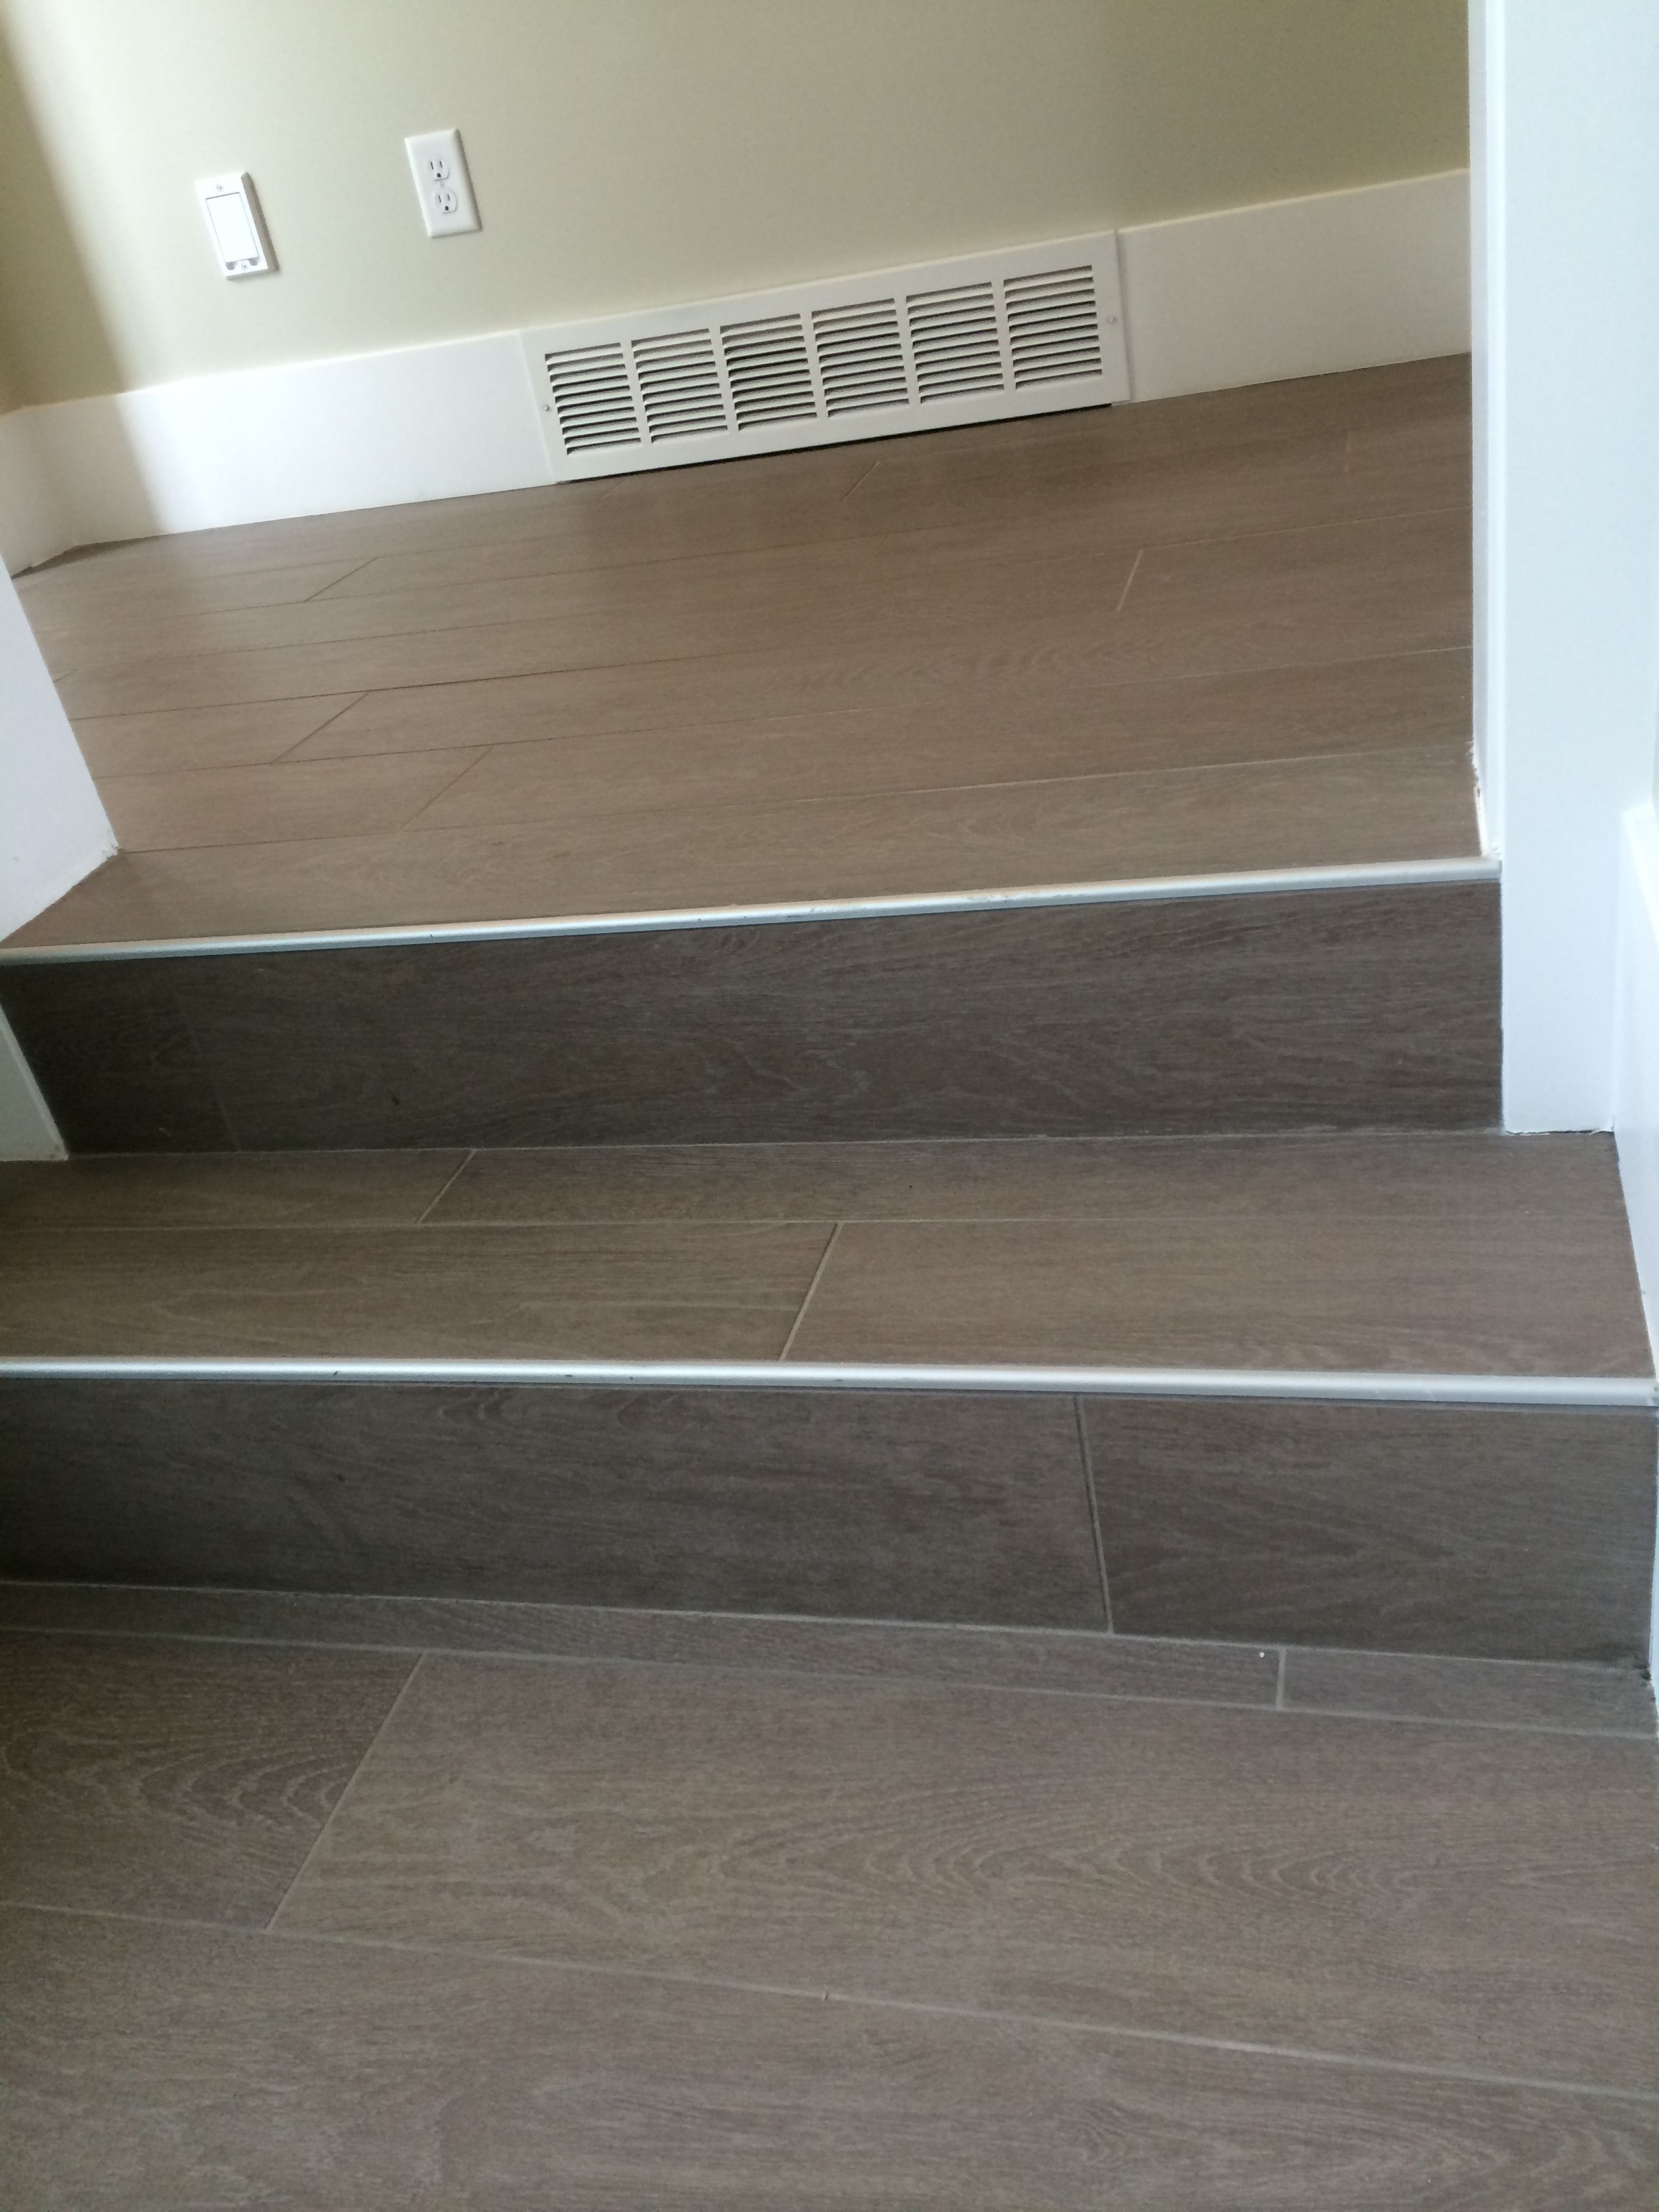 Wood floor tile on stairs with metal end cap | FINISHES ...